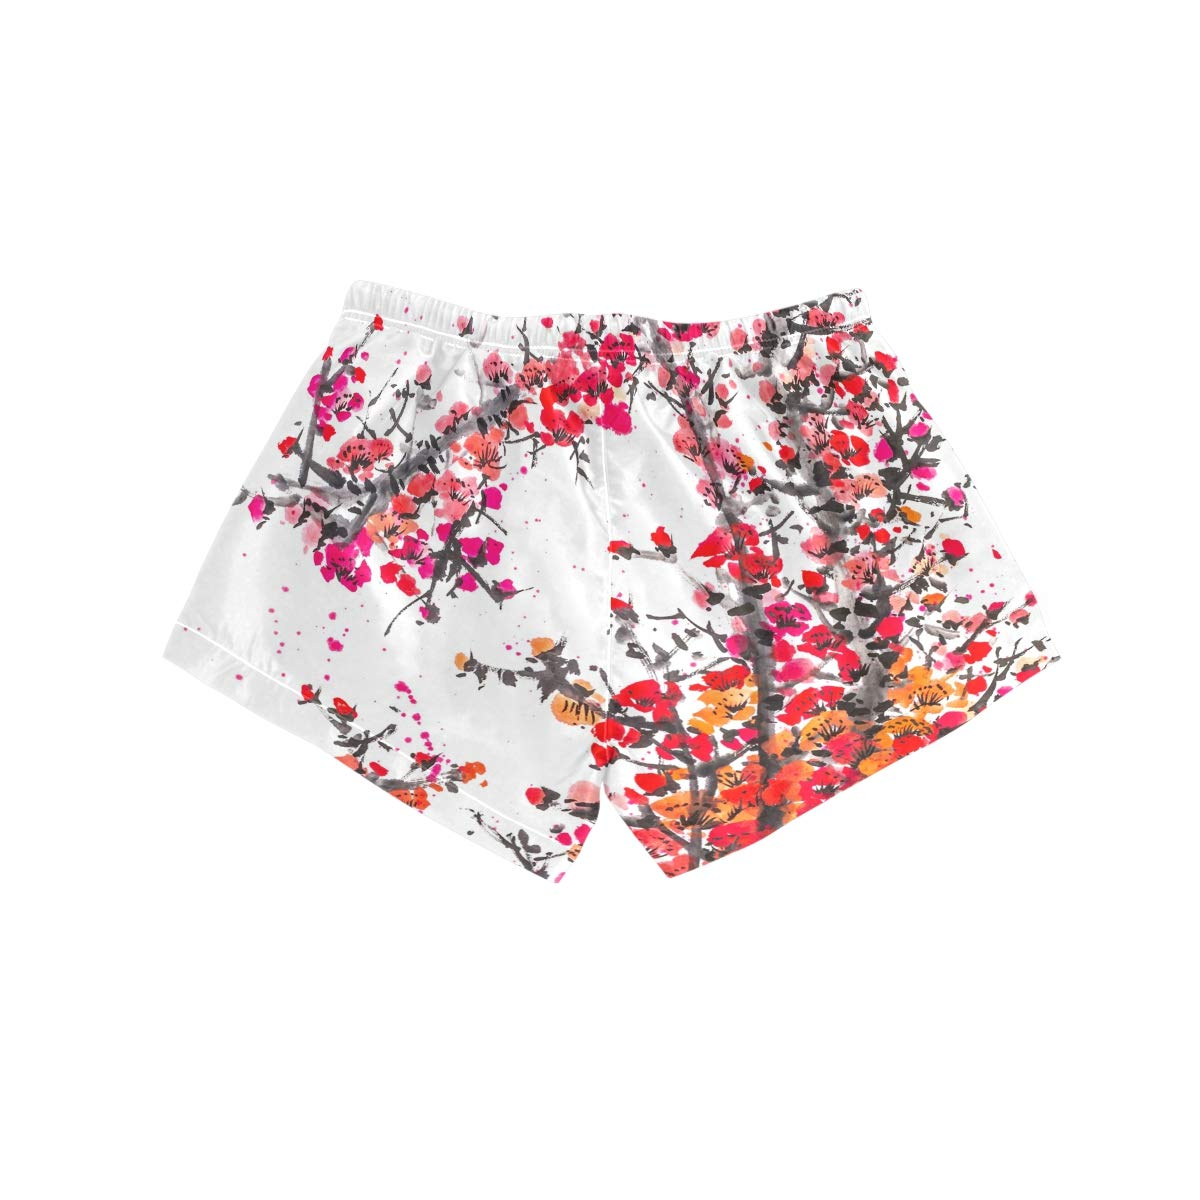 Women Swim Trunks Art Drawing Red Cherry Blossoms Beach Board Shorts